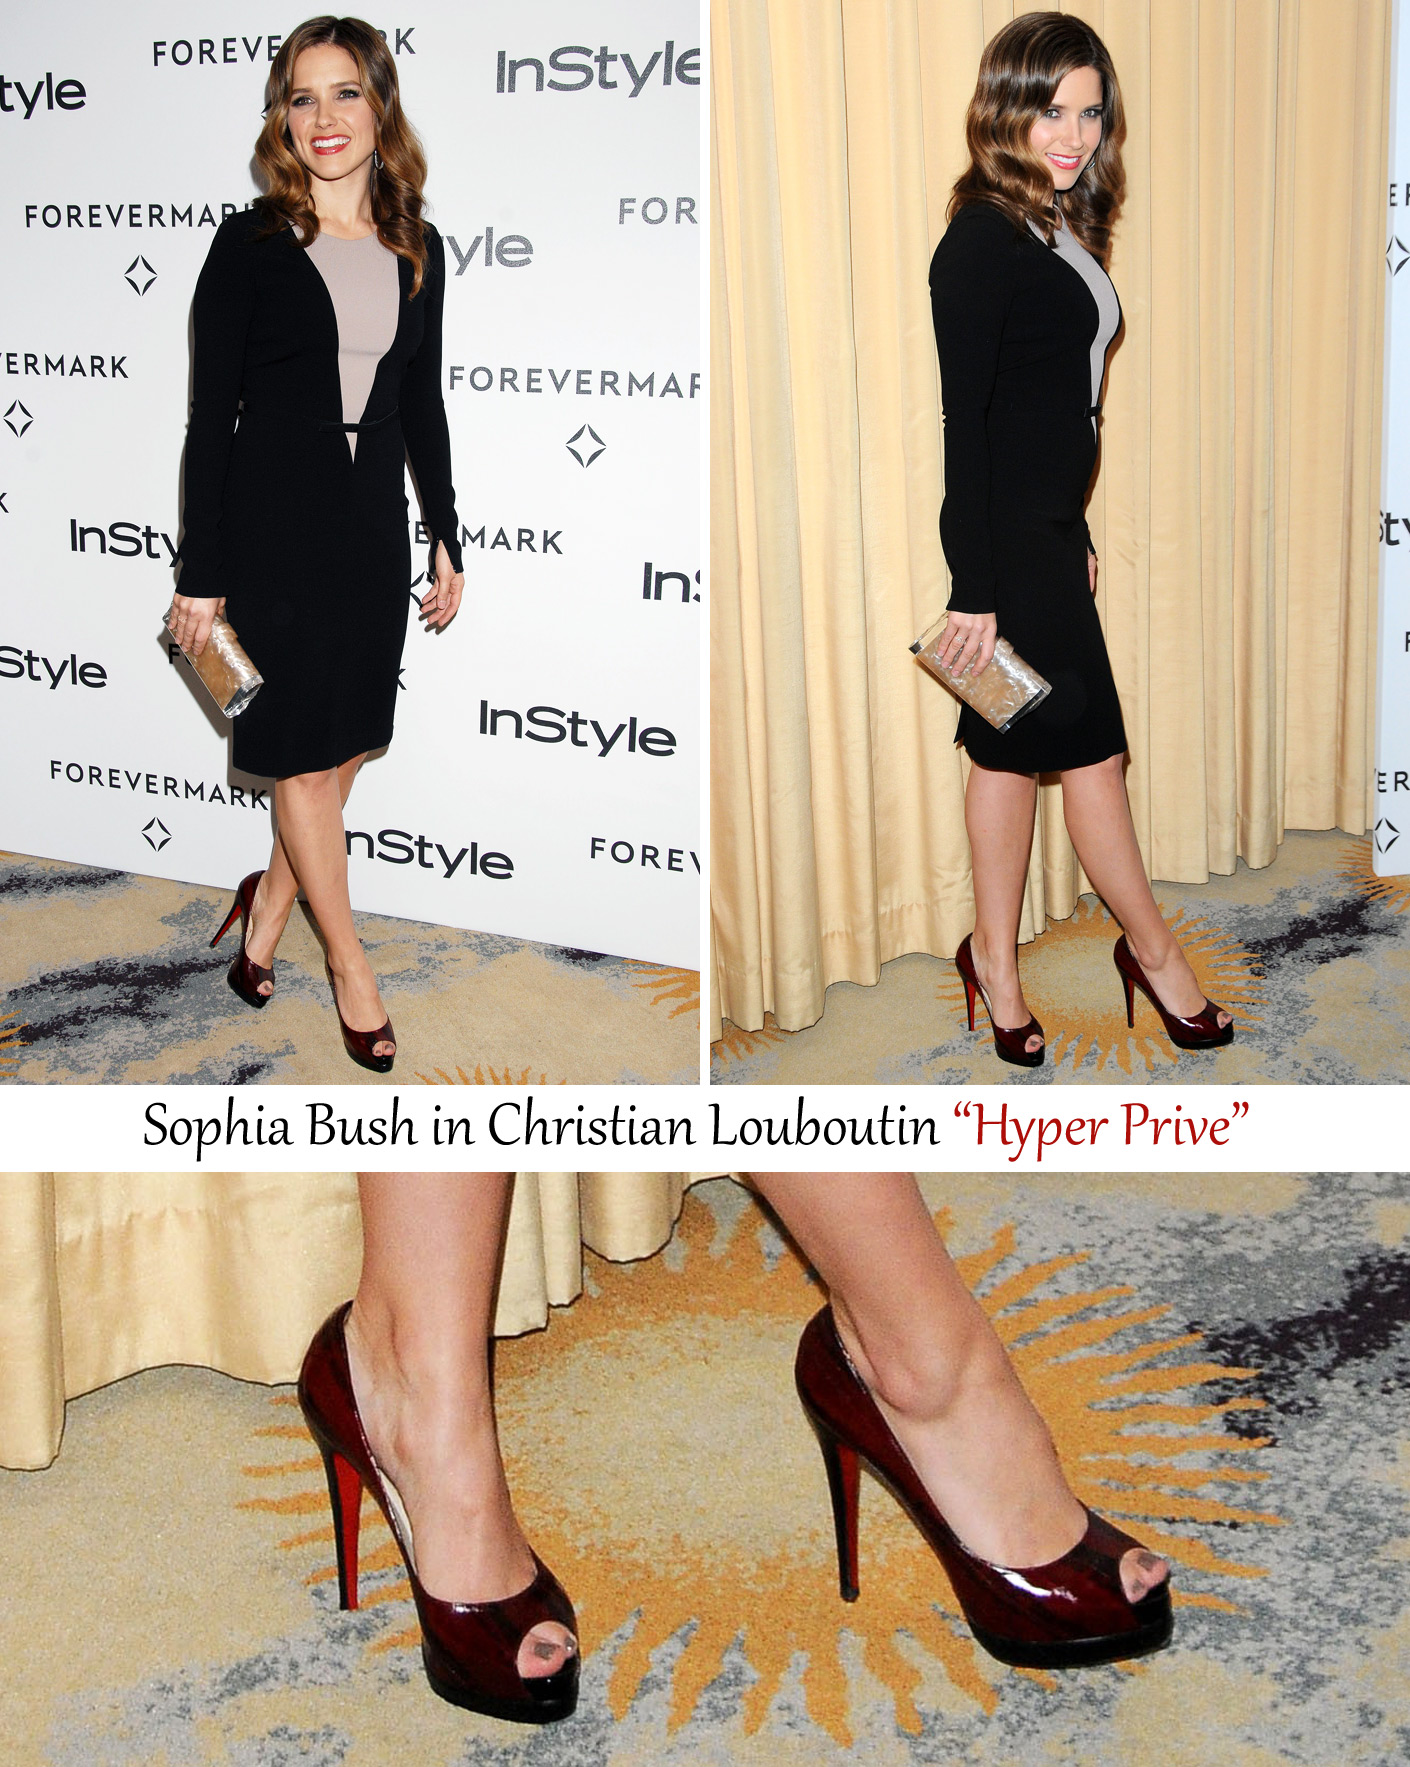 High sophia heels in bush